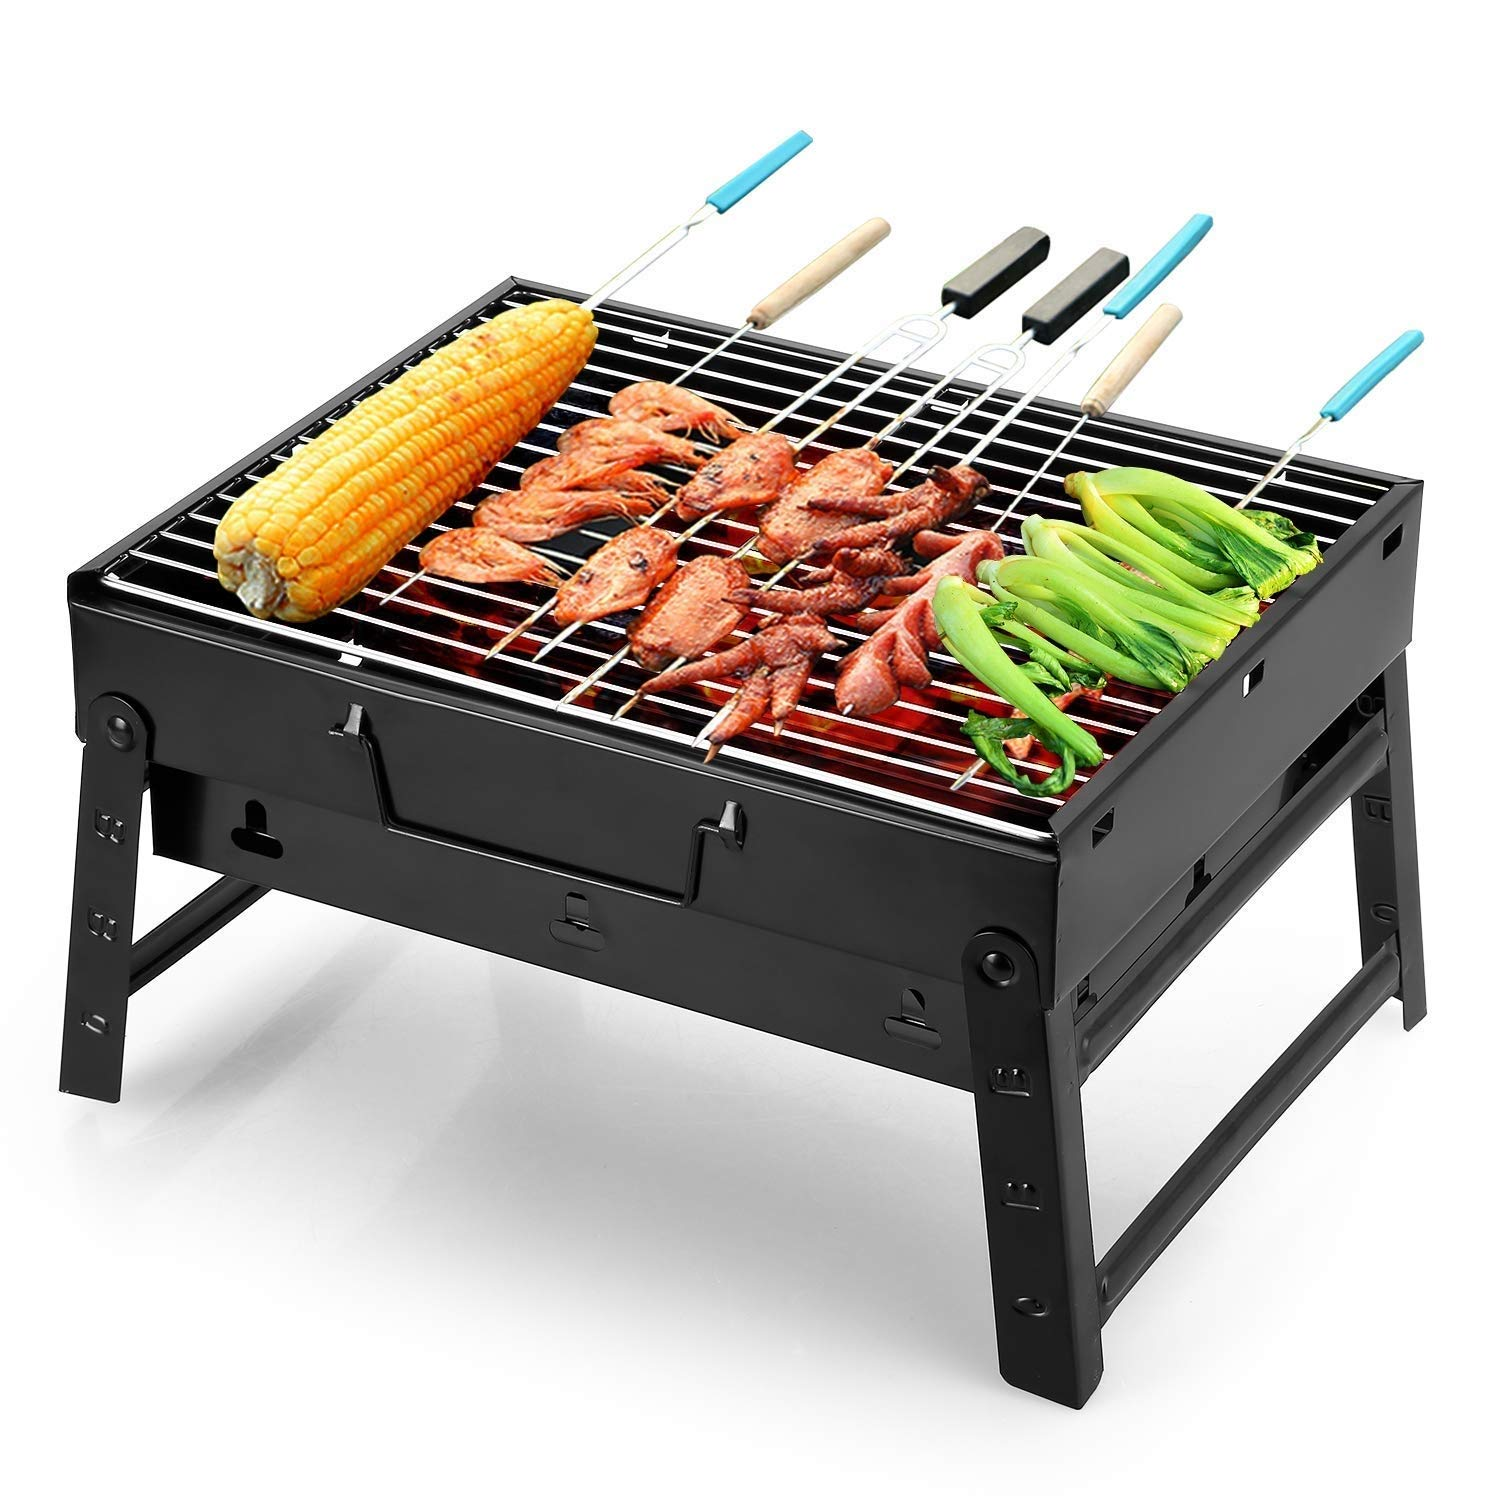 BBQ Charcoal Grill Folding Portable Light Barbecue Tool Outdoor Cooking Camping Hiking Picnic Picnic